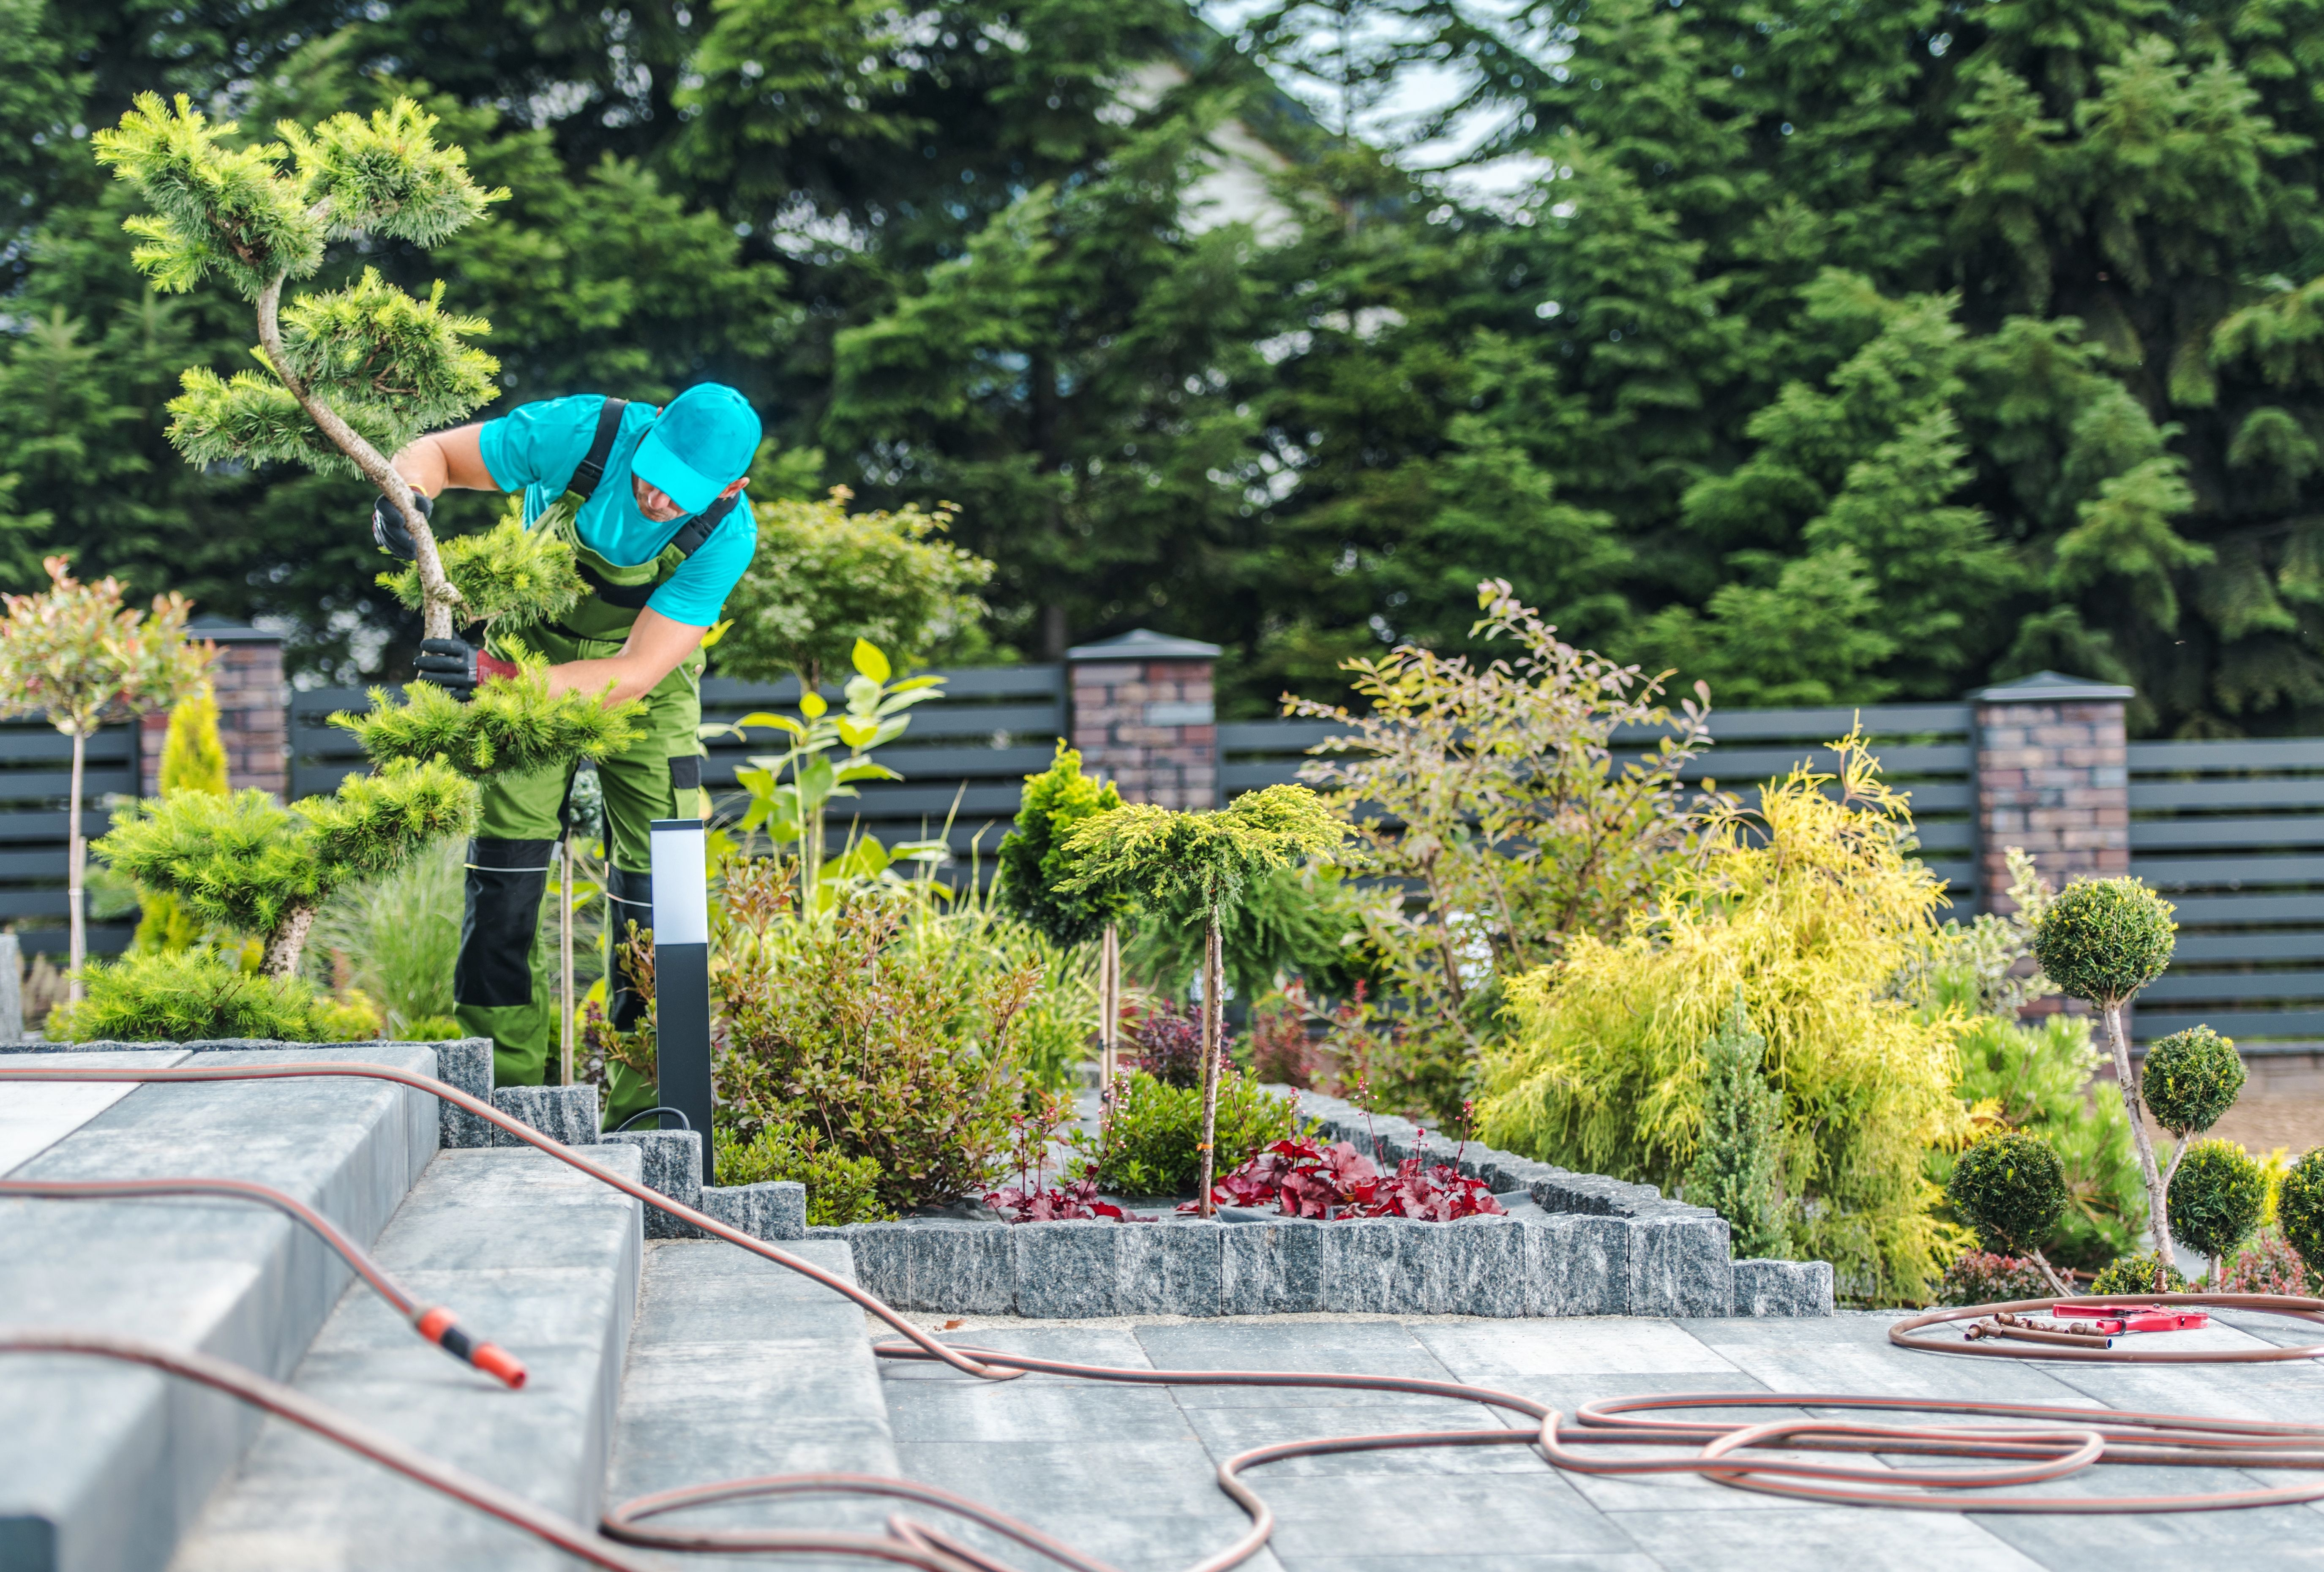 A gardener working in a garden with hose pipes on concrete stairs and a fence and trees in the background